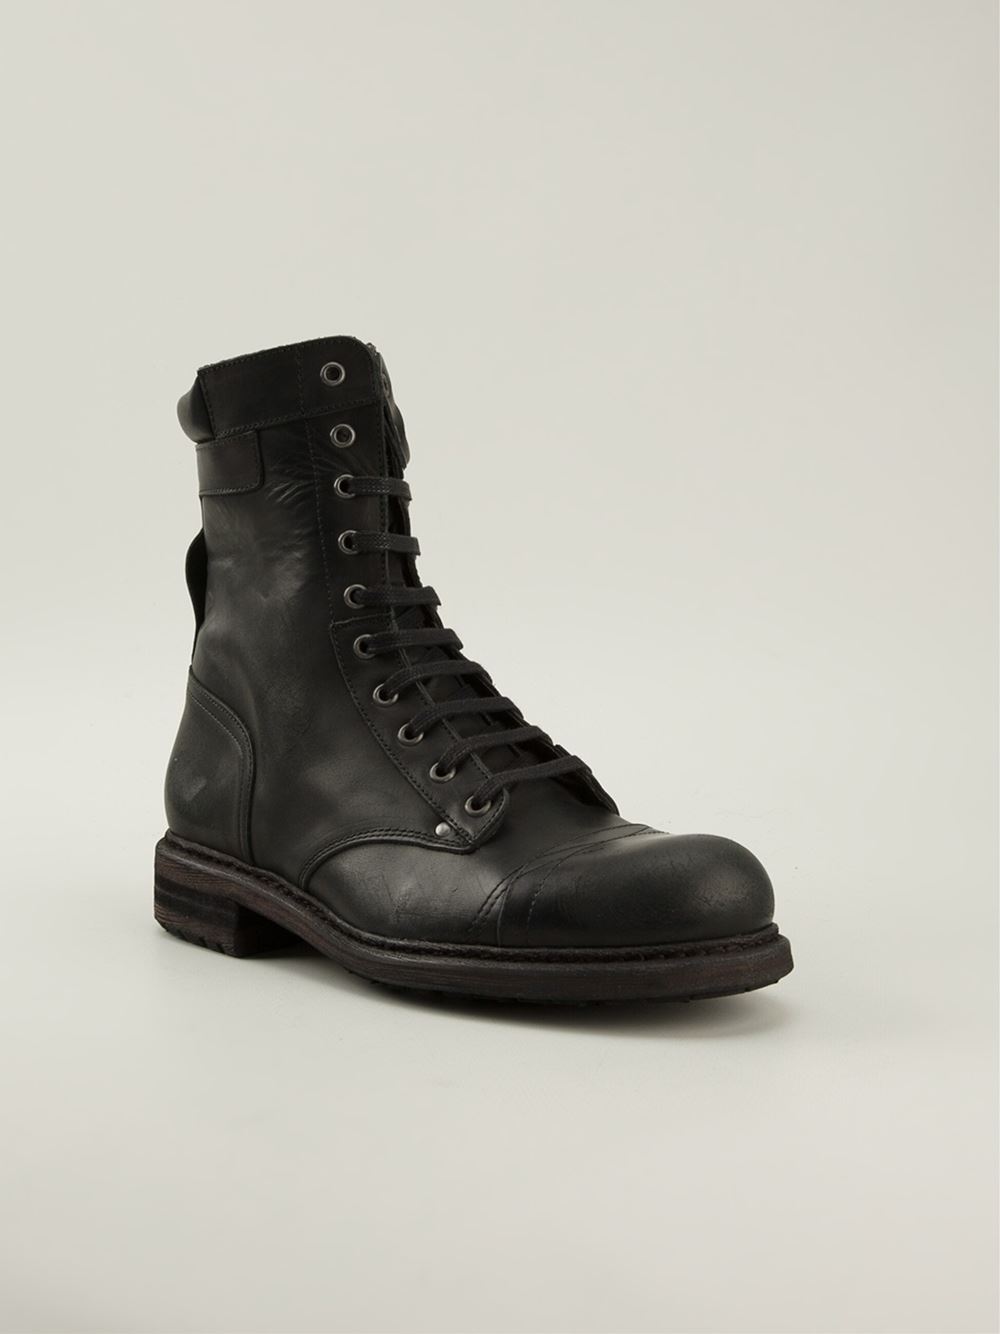 lyst diesel cassidy boots in black for men